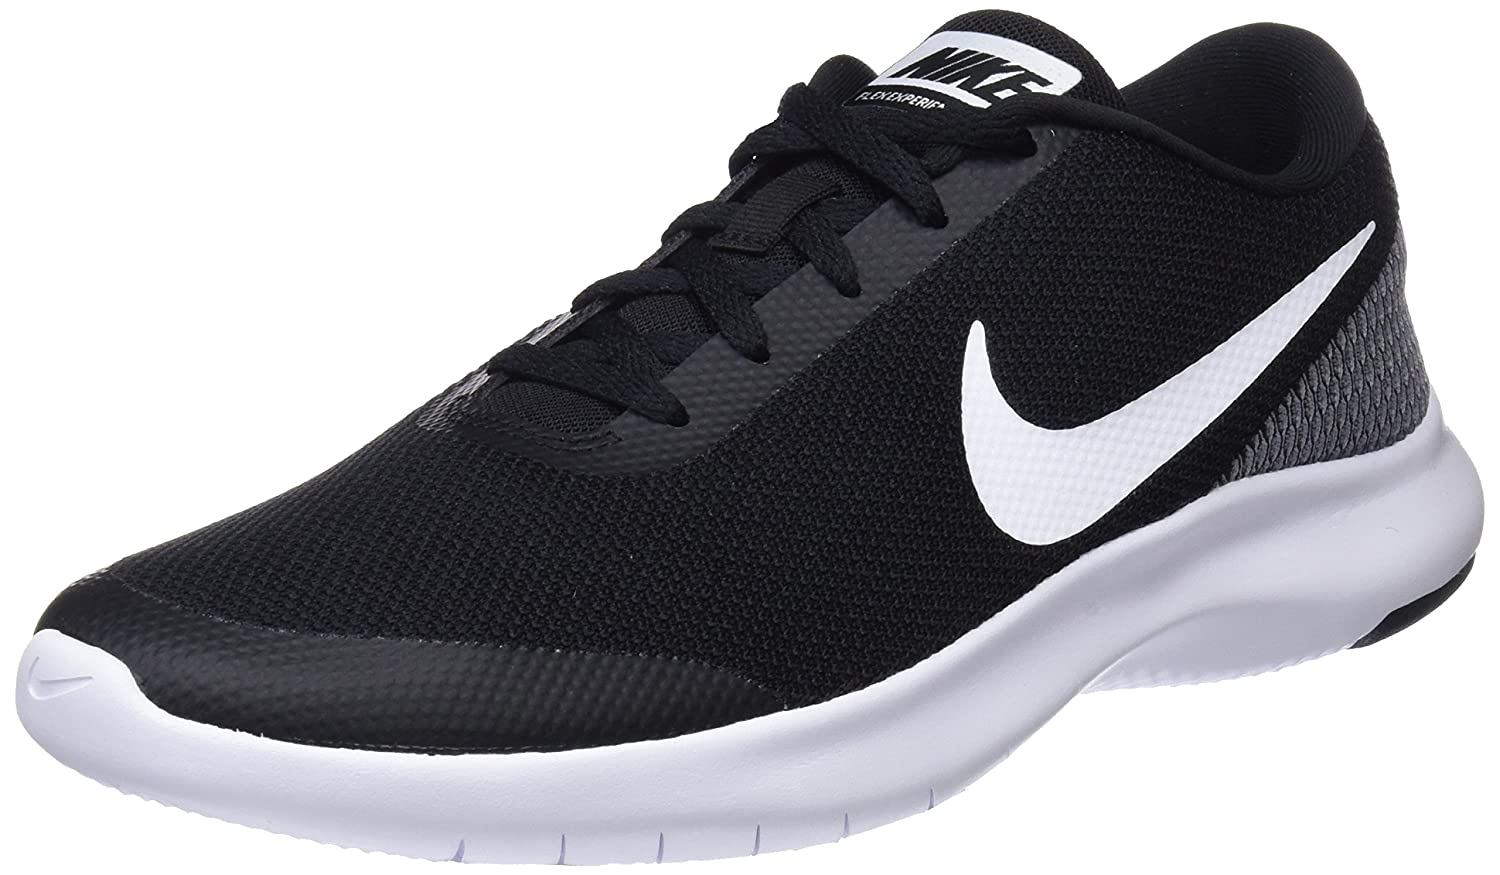 meet 14516 a4a11 Amazon.com   NIKE Men s Flex Experience RN 7 Running Shoe   Athletic